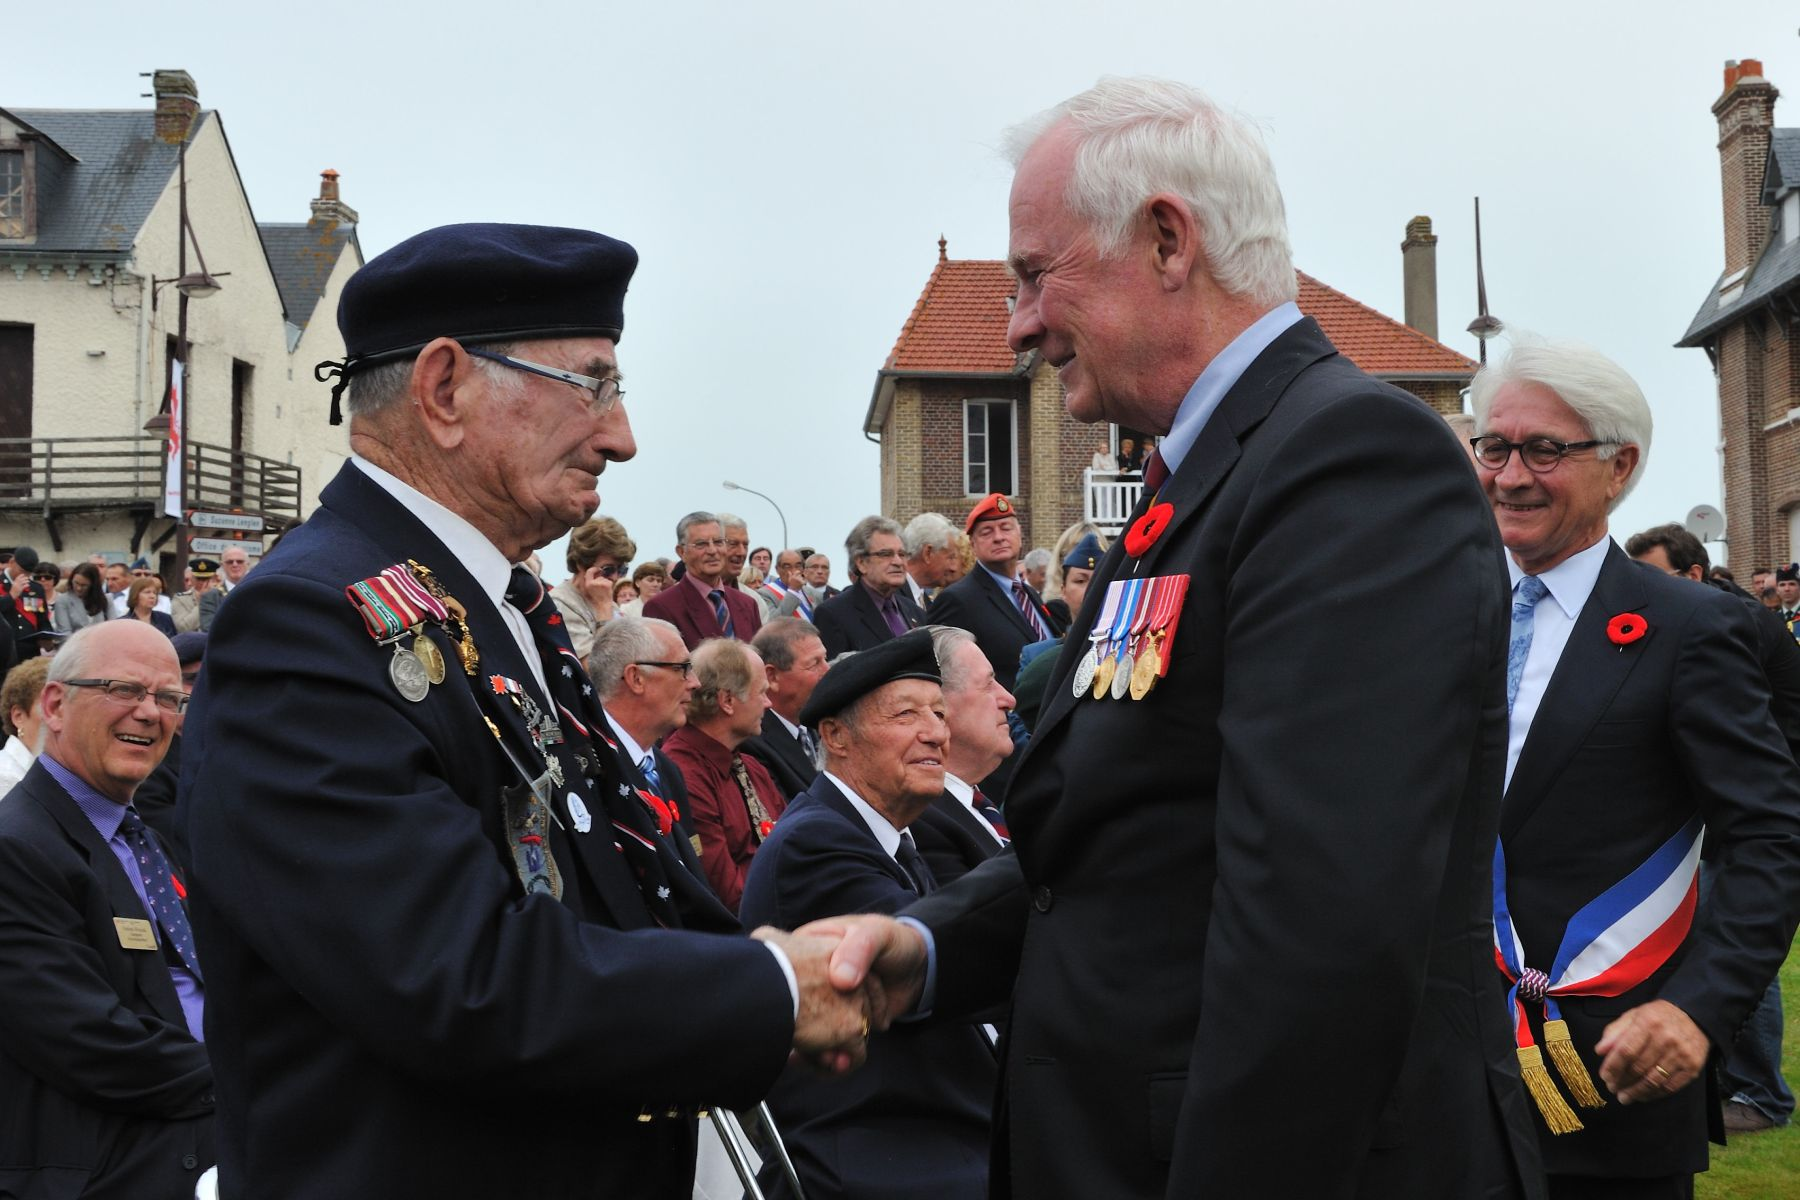 Following the ceremony at the Pourville Memorial, the Governor General shook hands with Mr. Jacques Nadeau, a Canadian veteran of the Dieppe Raid.